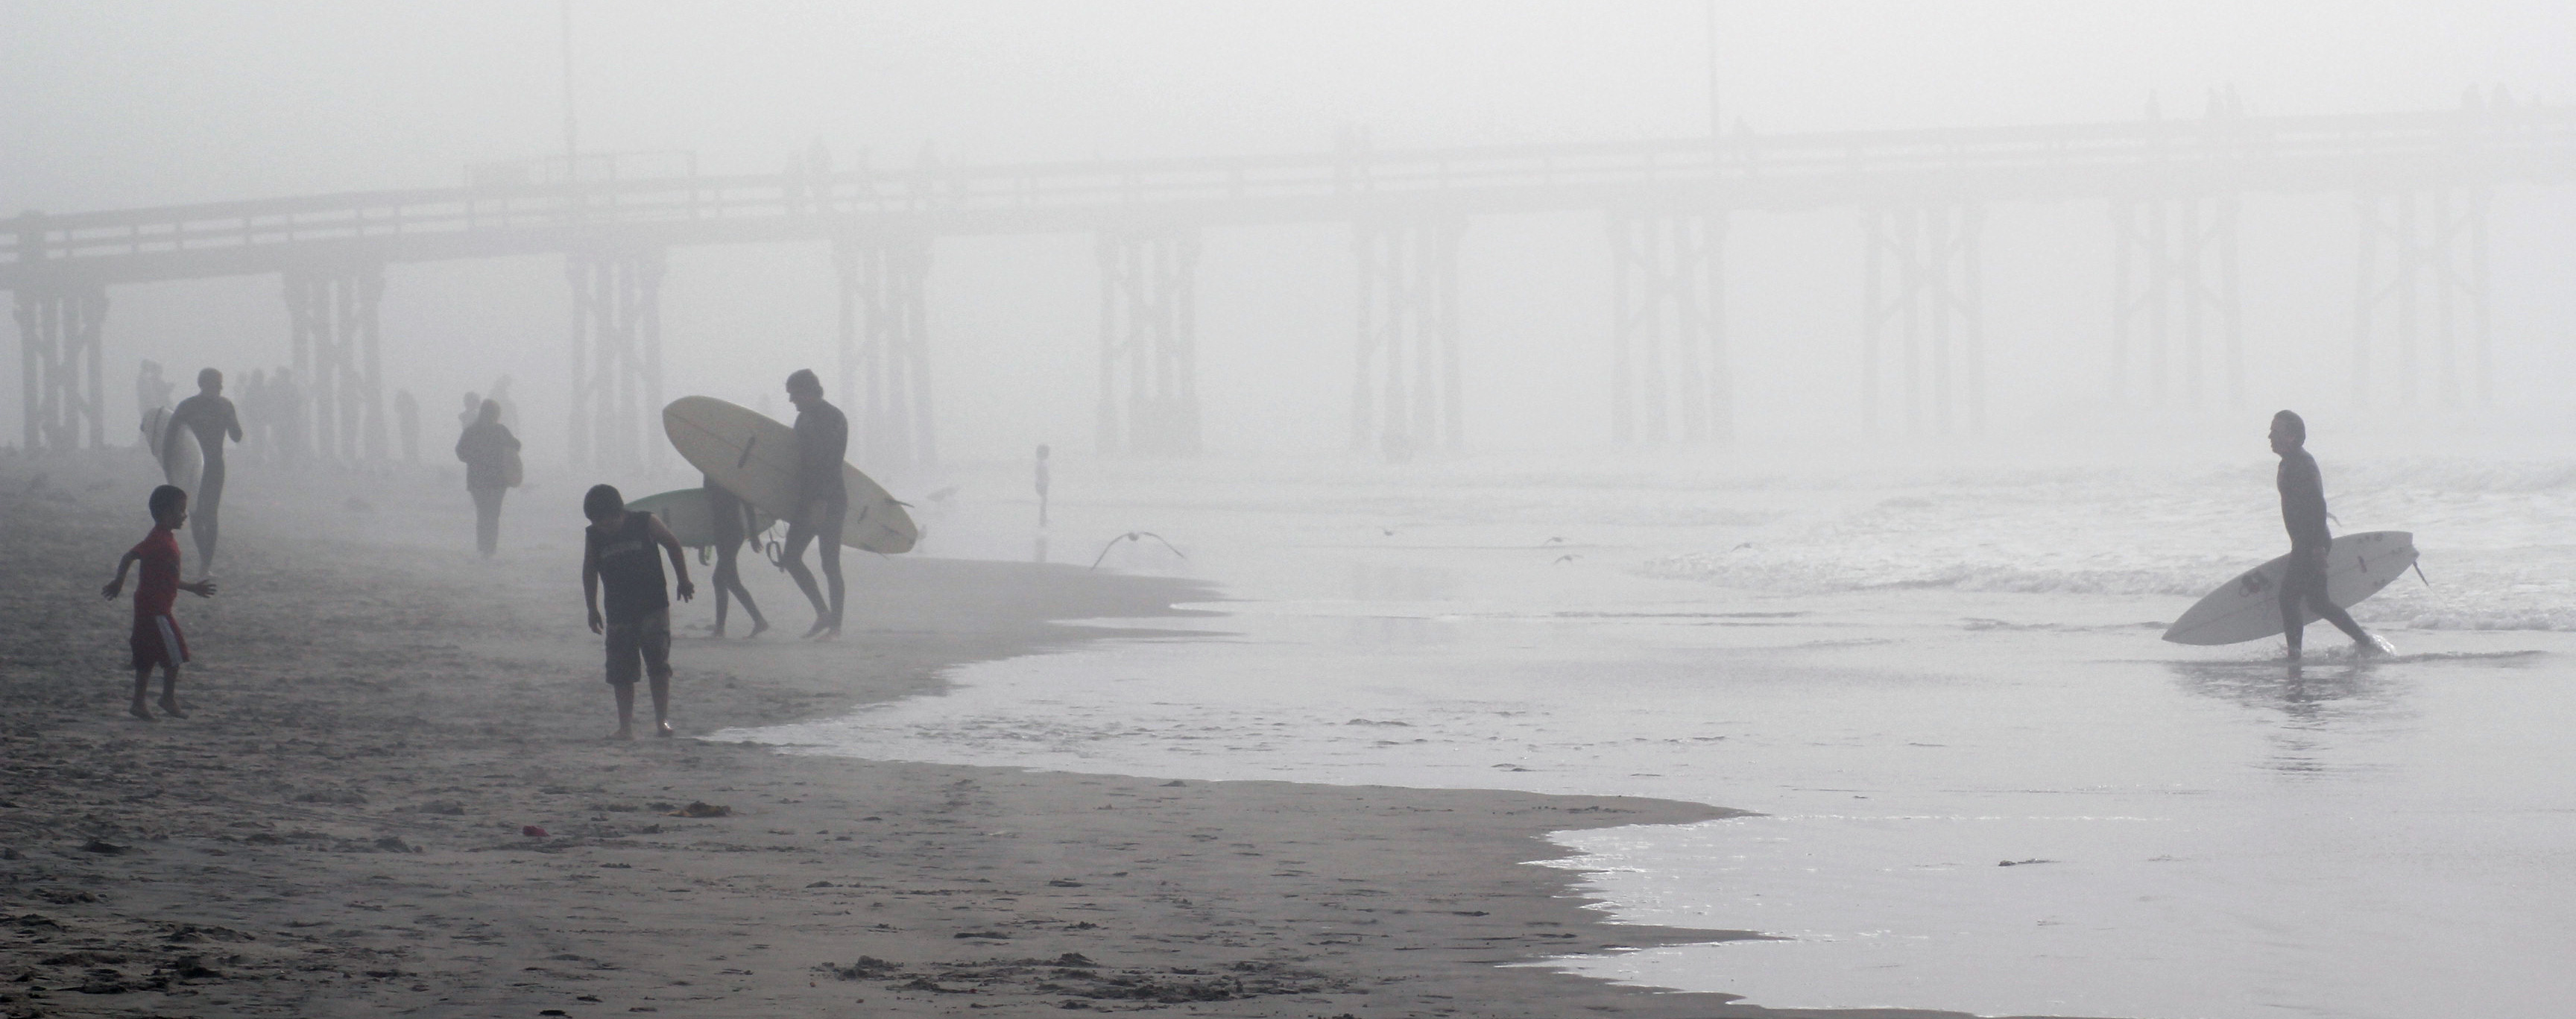 Surfers in the Mist